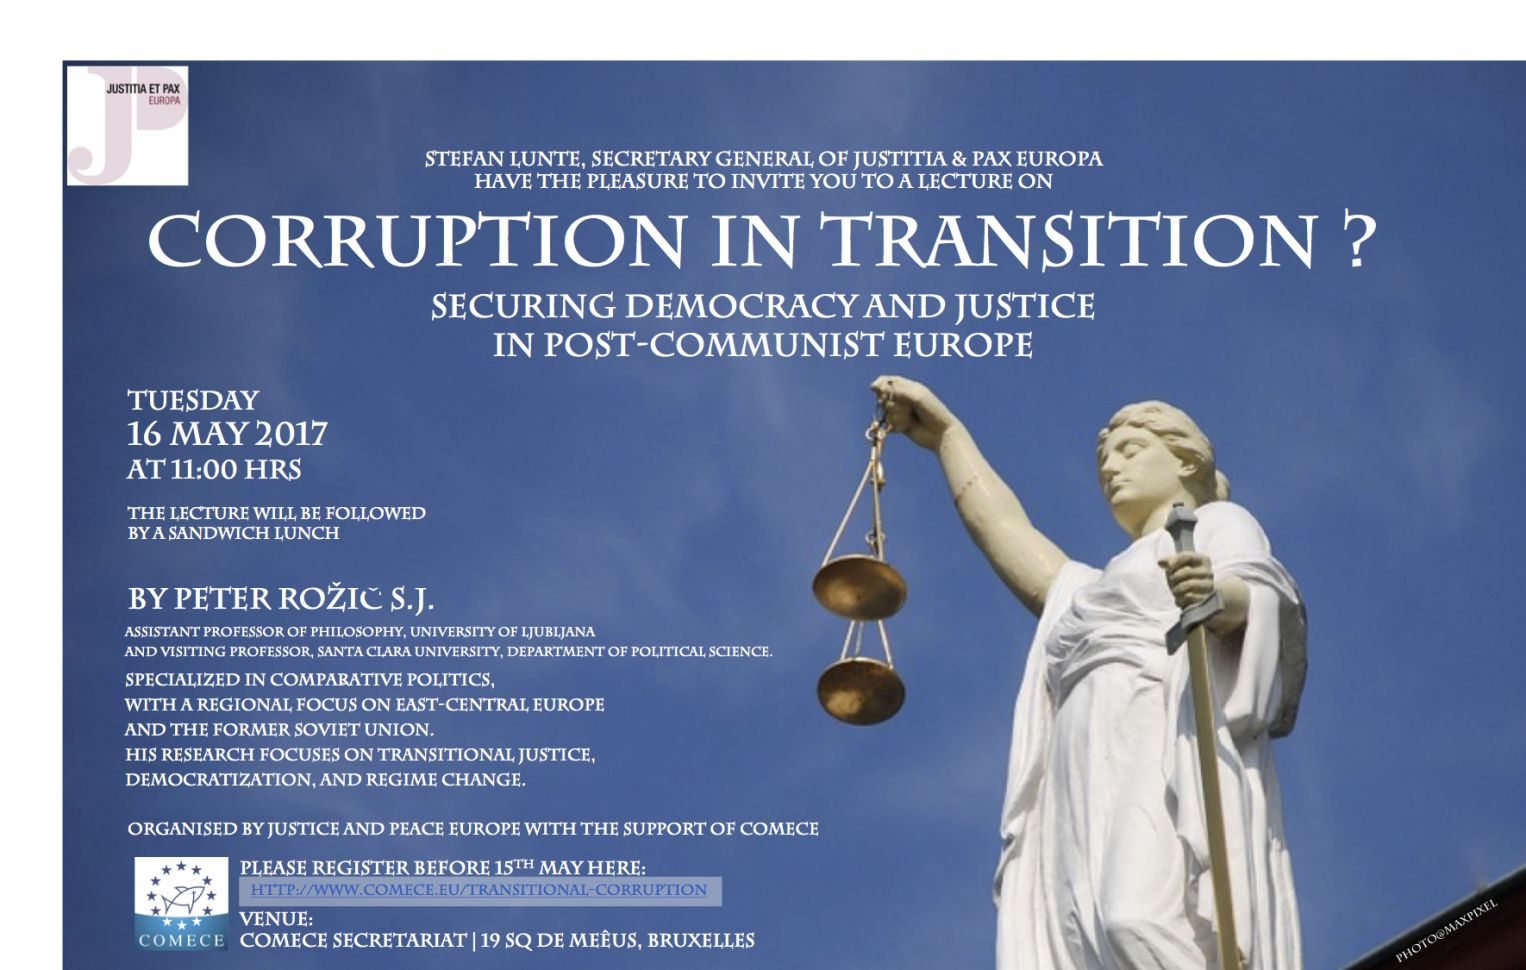 Transitional Corruption? - Securing Democracy and Justice in Post-Communist Europe